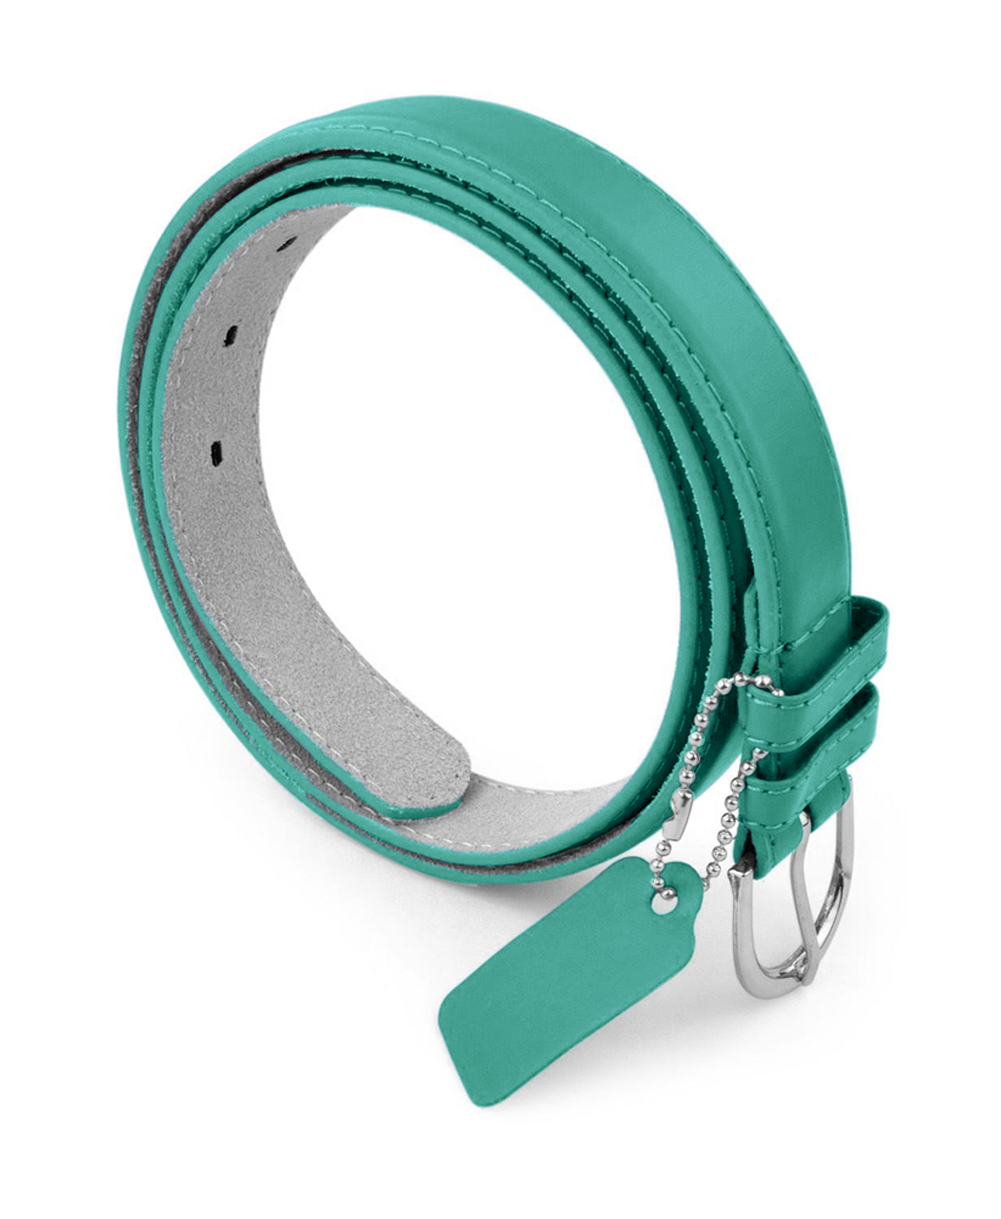 Womens Dress Belt - Solid Color Bonded Leather Silver Polished Buckle Belle Donne - Teal X-Large